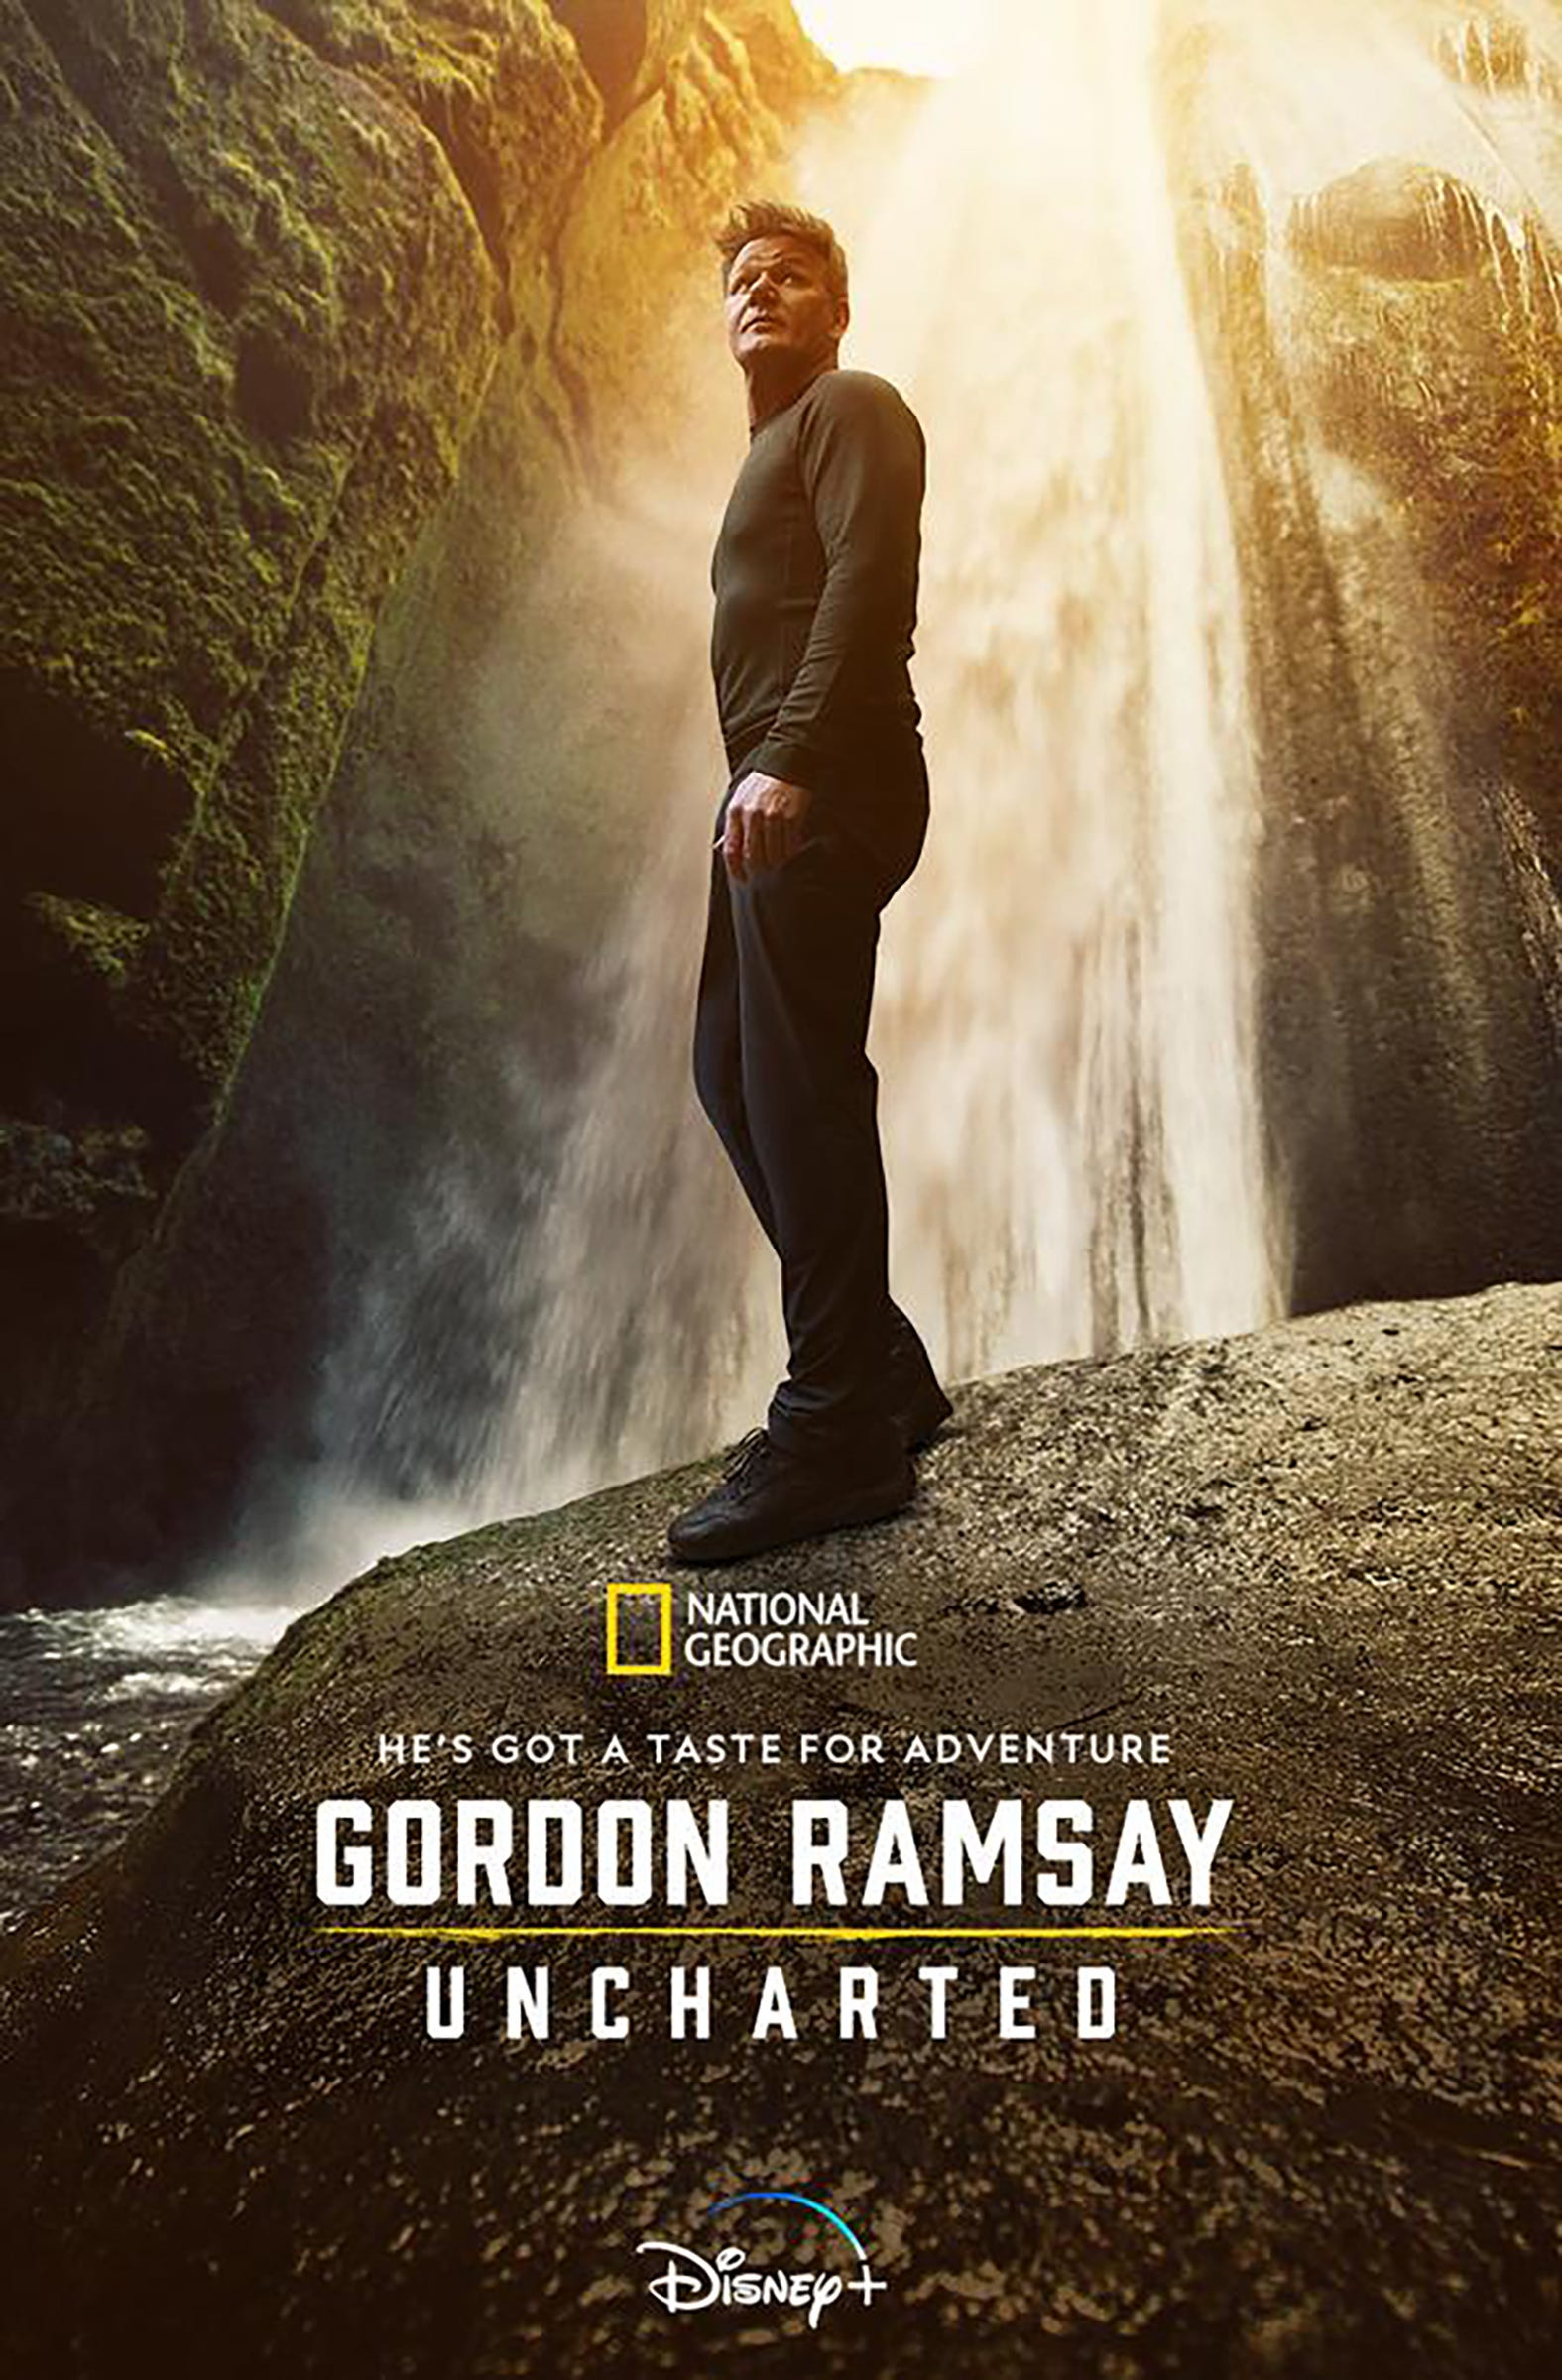 Gordon Ramsay filmed an episode of his 'Uncharted] series in the U.P.